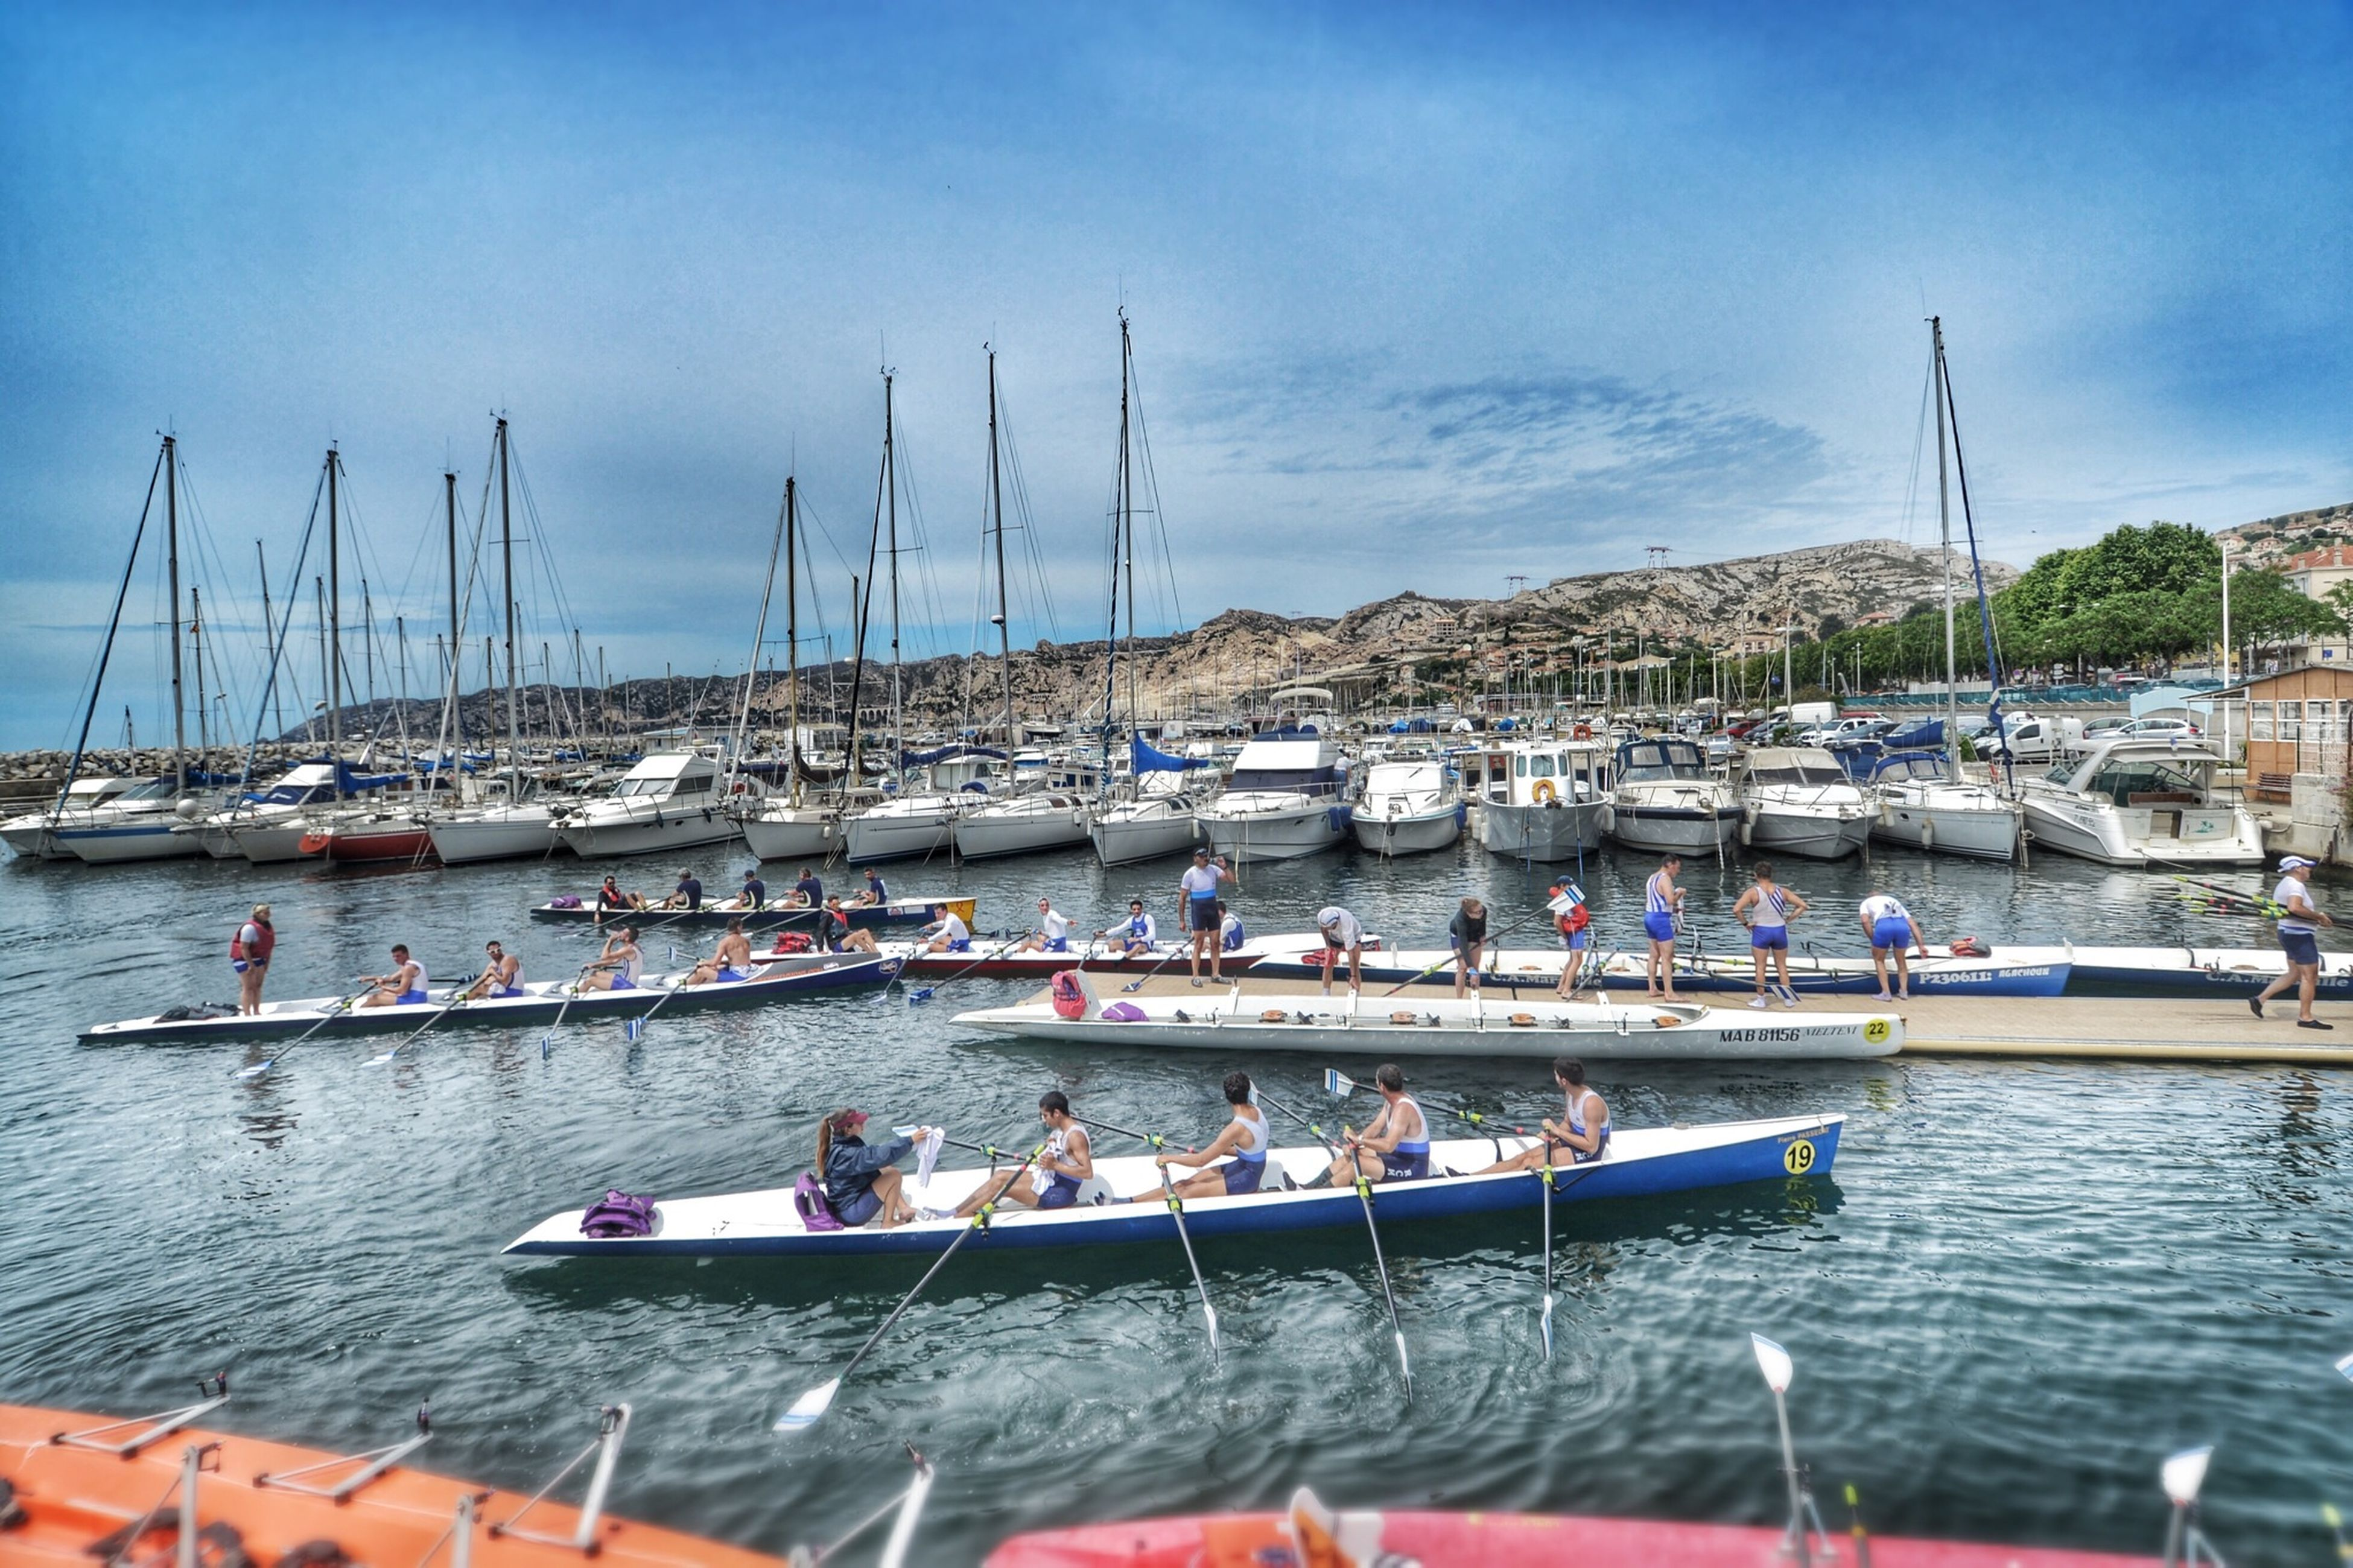 nautical vessel, transportation, boat, moored, mode of transport, water, sky, mast, harbor, sea, sailboat, waterfront, cloud - sky, travel, marina, nature, yacht, day, cloud, outdoors